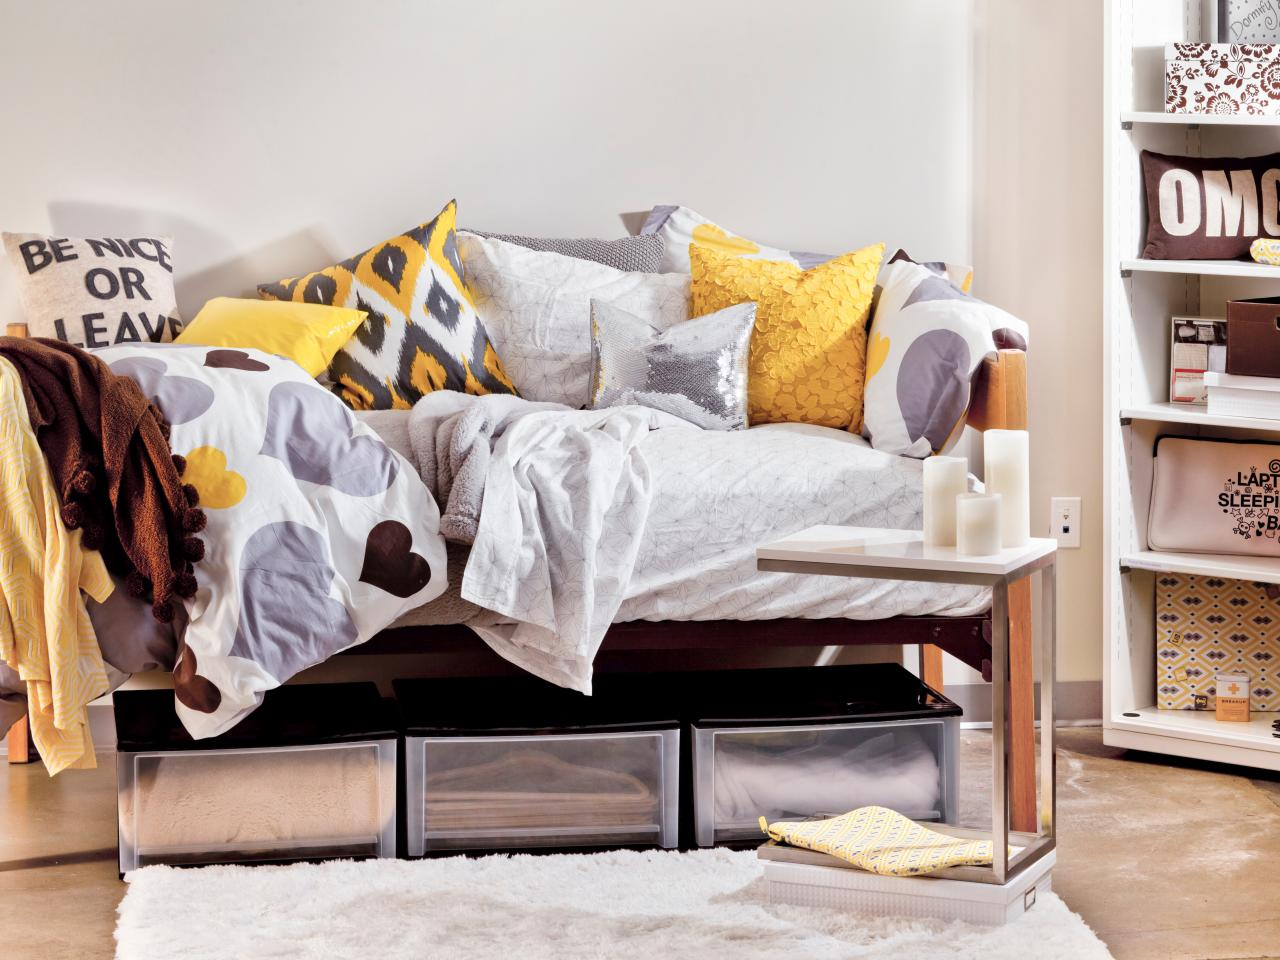 CI-Dormify_dorm-room-yellow-gray-bedding-daybed_s4x3.jpg.rend.hgtvcom.1280.960